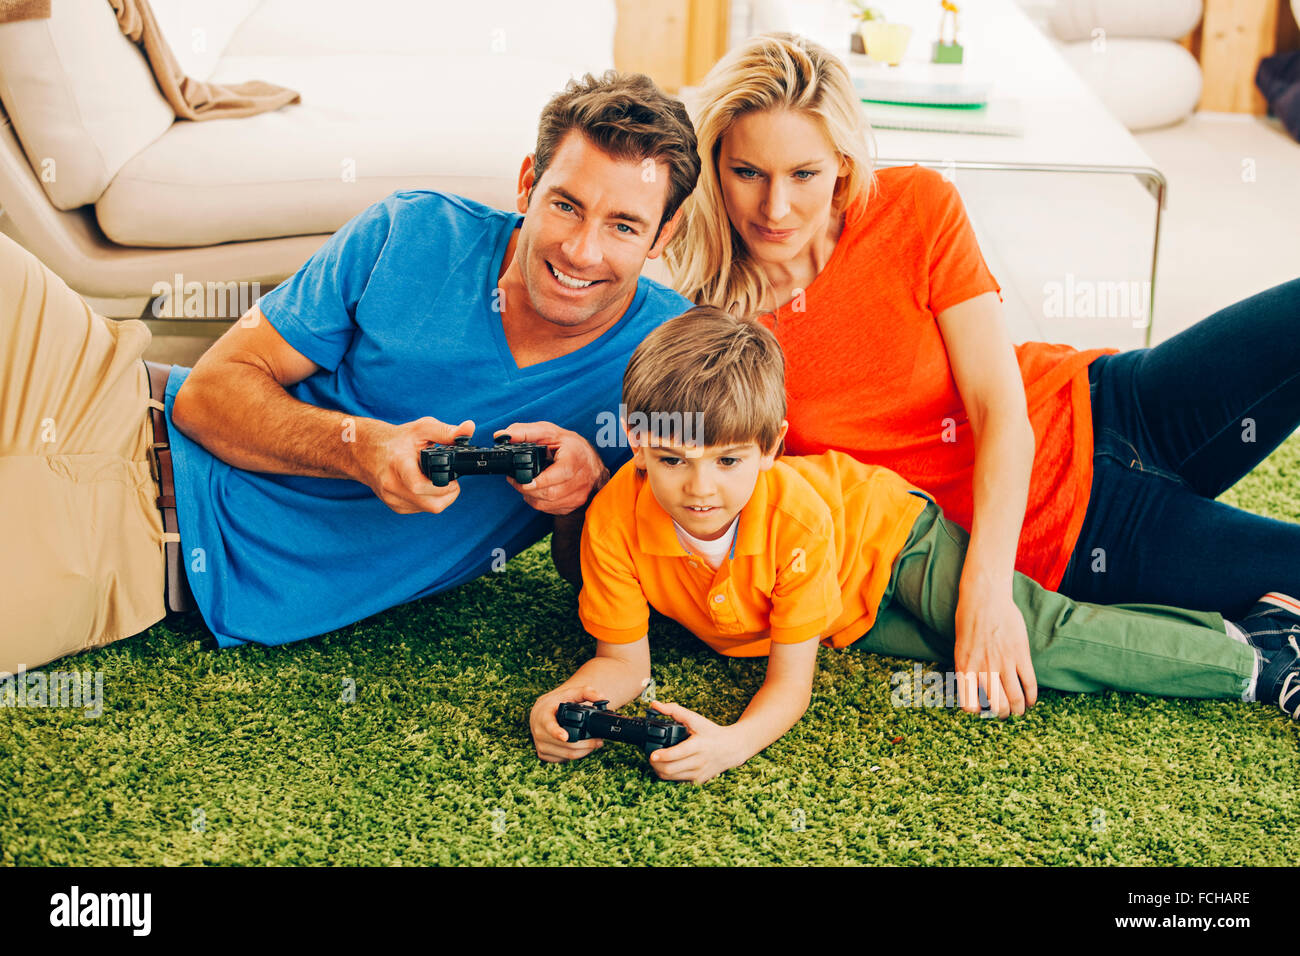 Family of three playing video game in living room - Stock Image